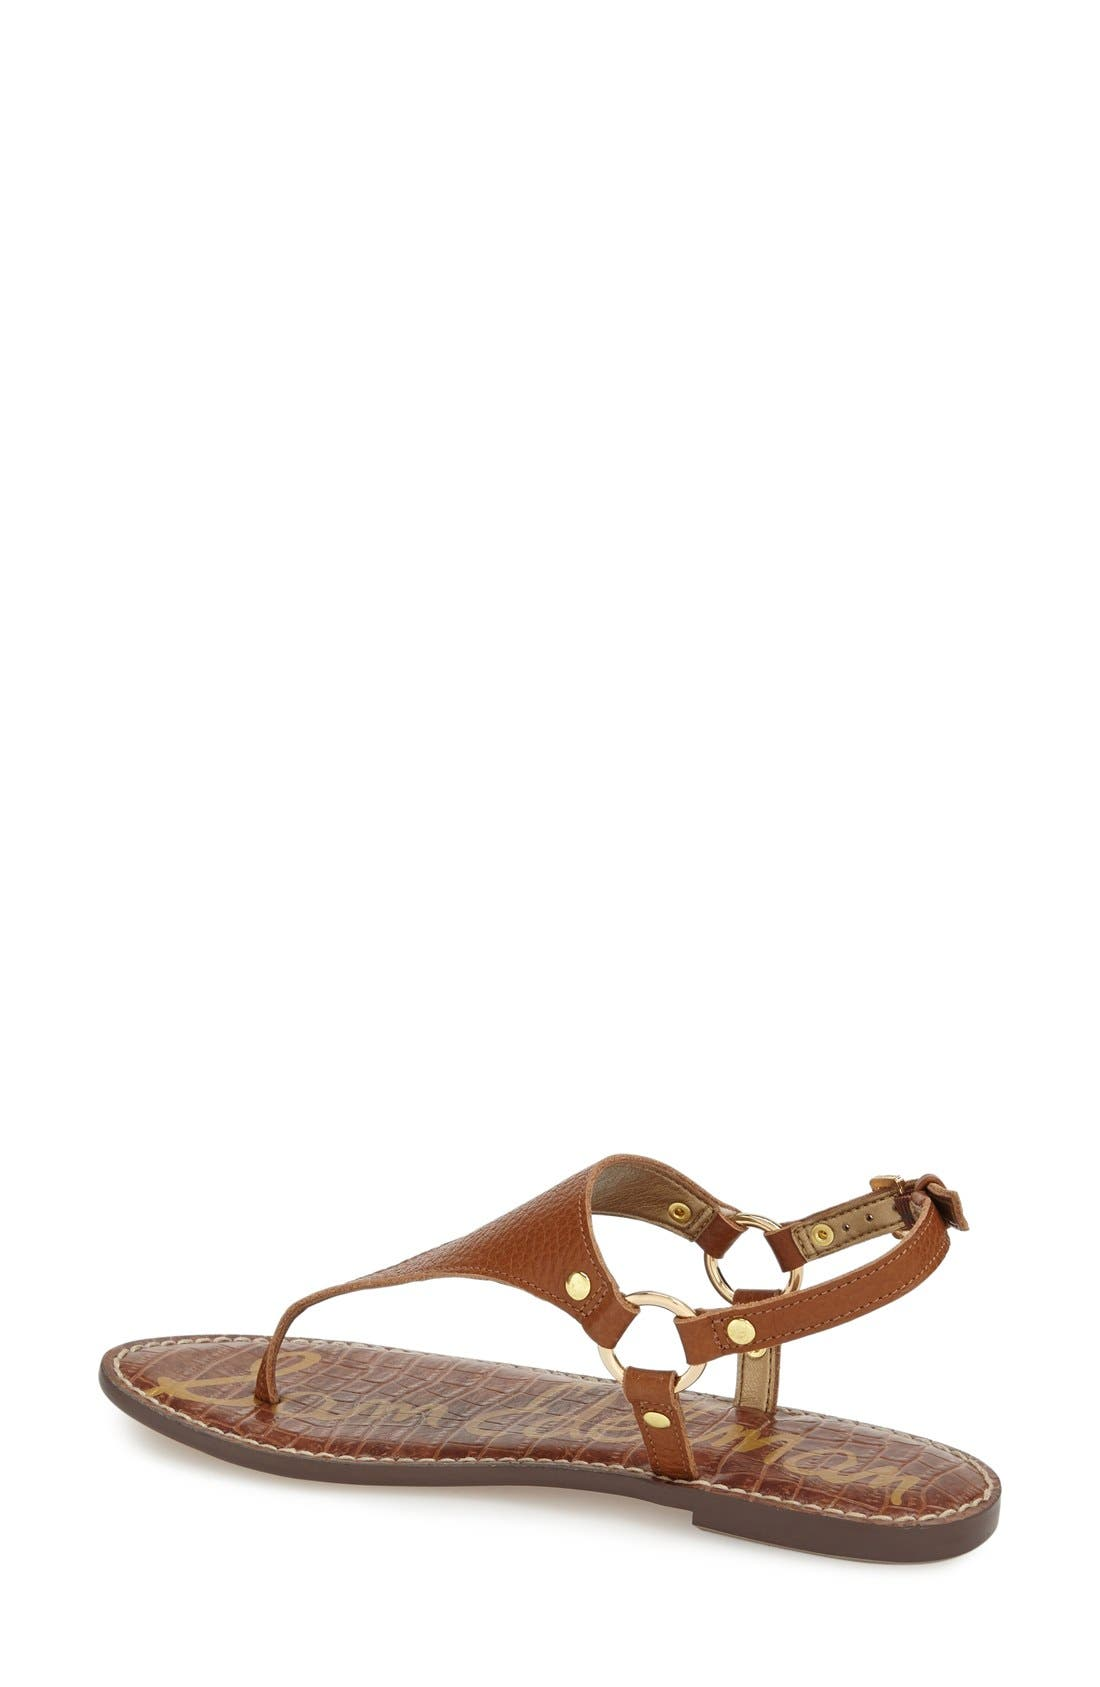 Greta Sandal,                             Alternate thumbnail 3, color,                             SOFT SADDLE LEATHER